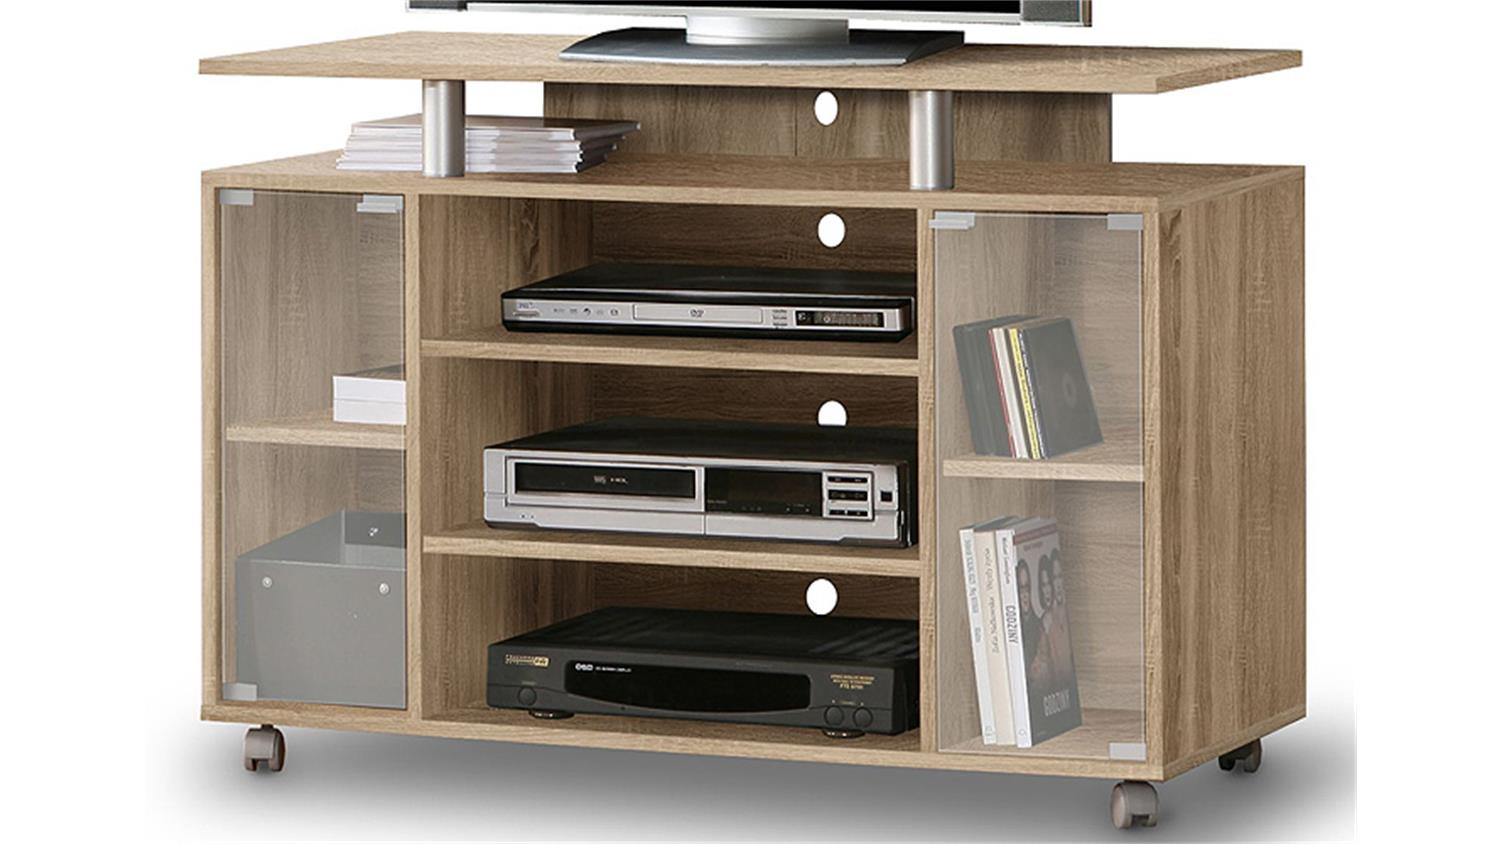 tvschrank rtv rack tvboard in sonoma eiche auf rollen. Black Bedroom Furniture Sets. Home Design Ideas